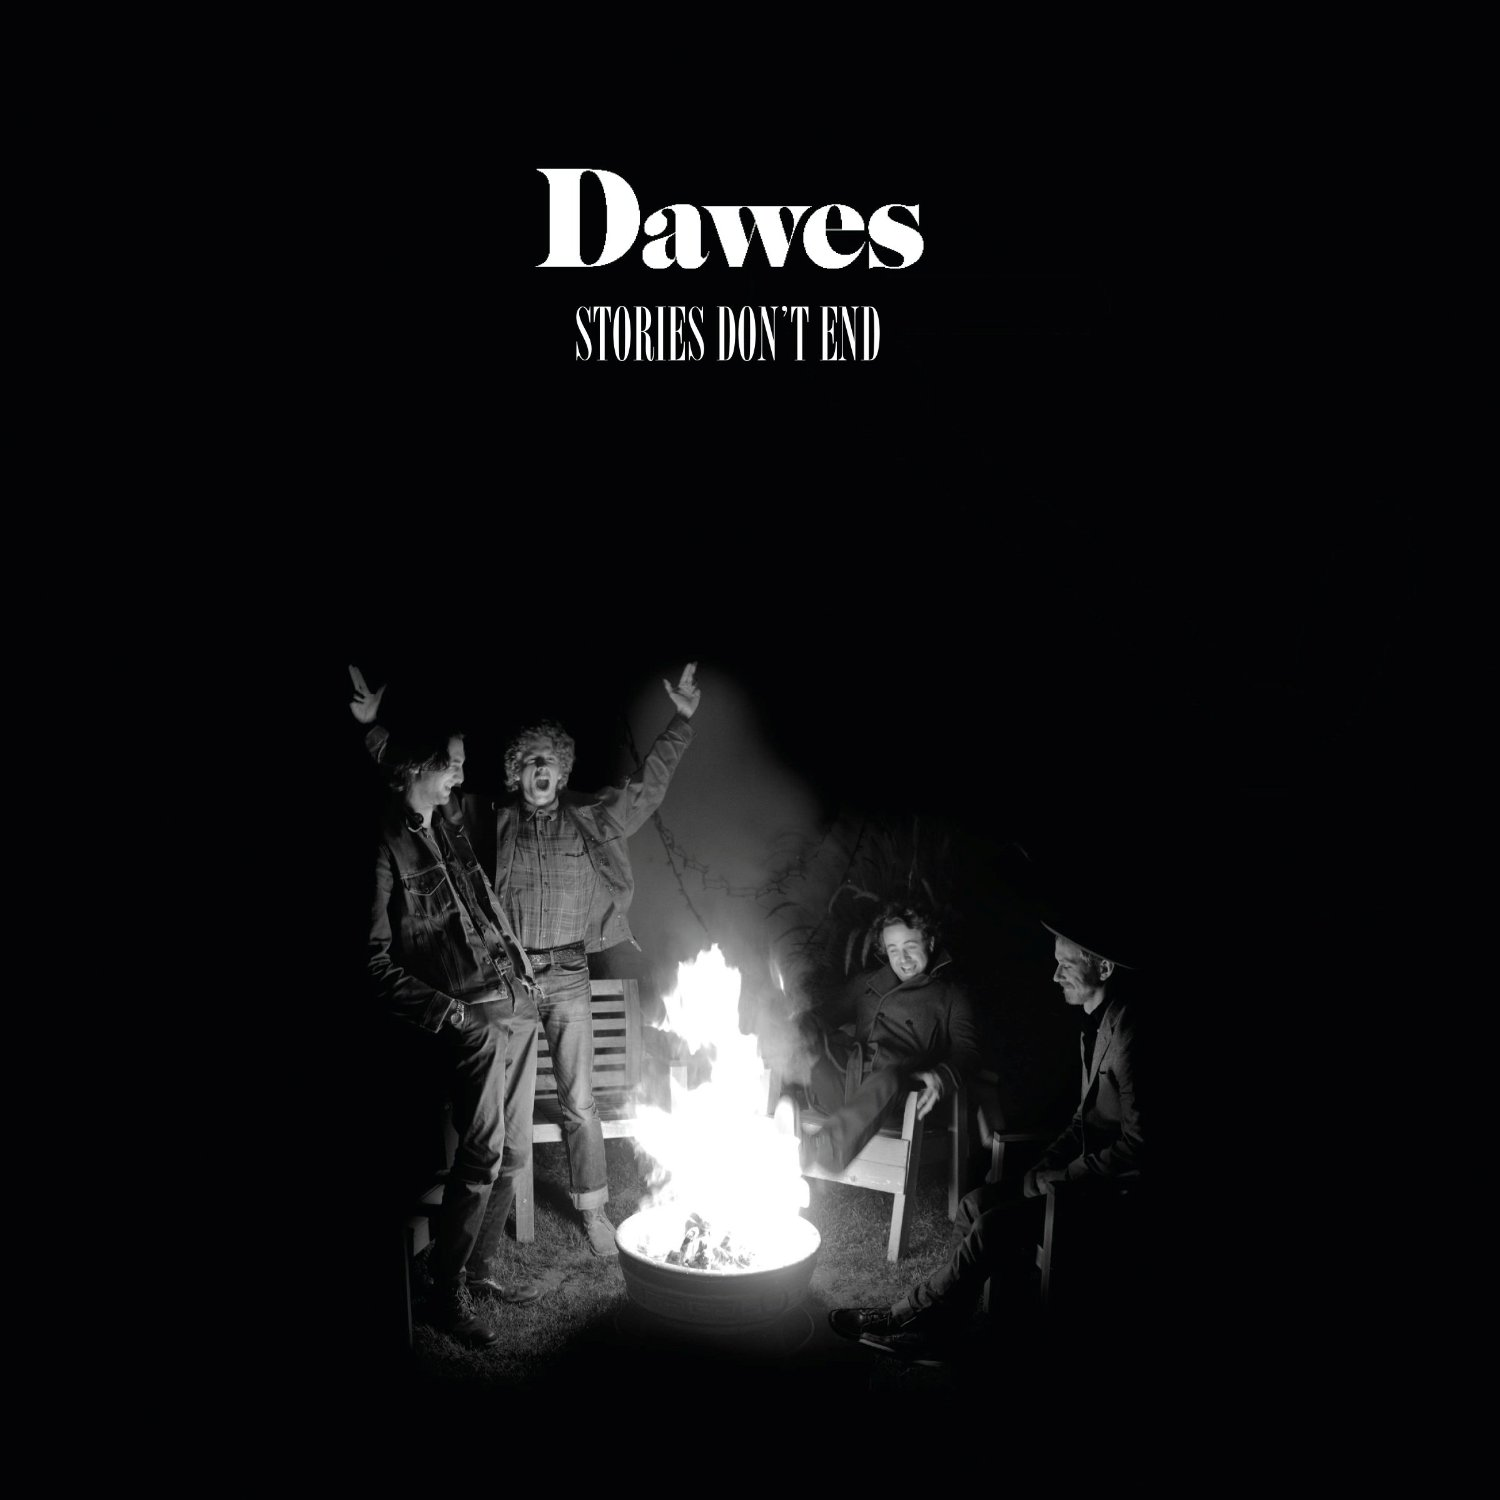 dawes-stories-dont-end-cover